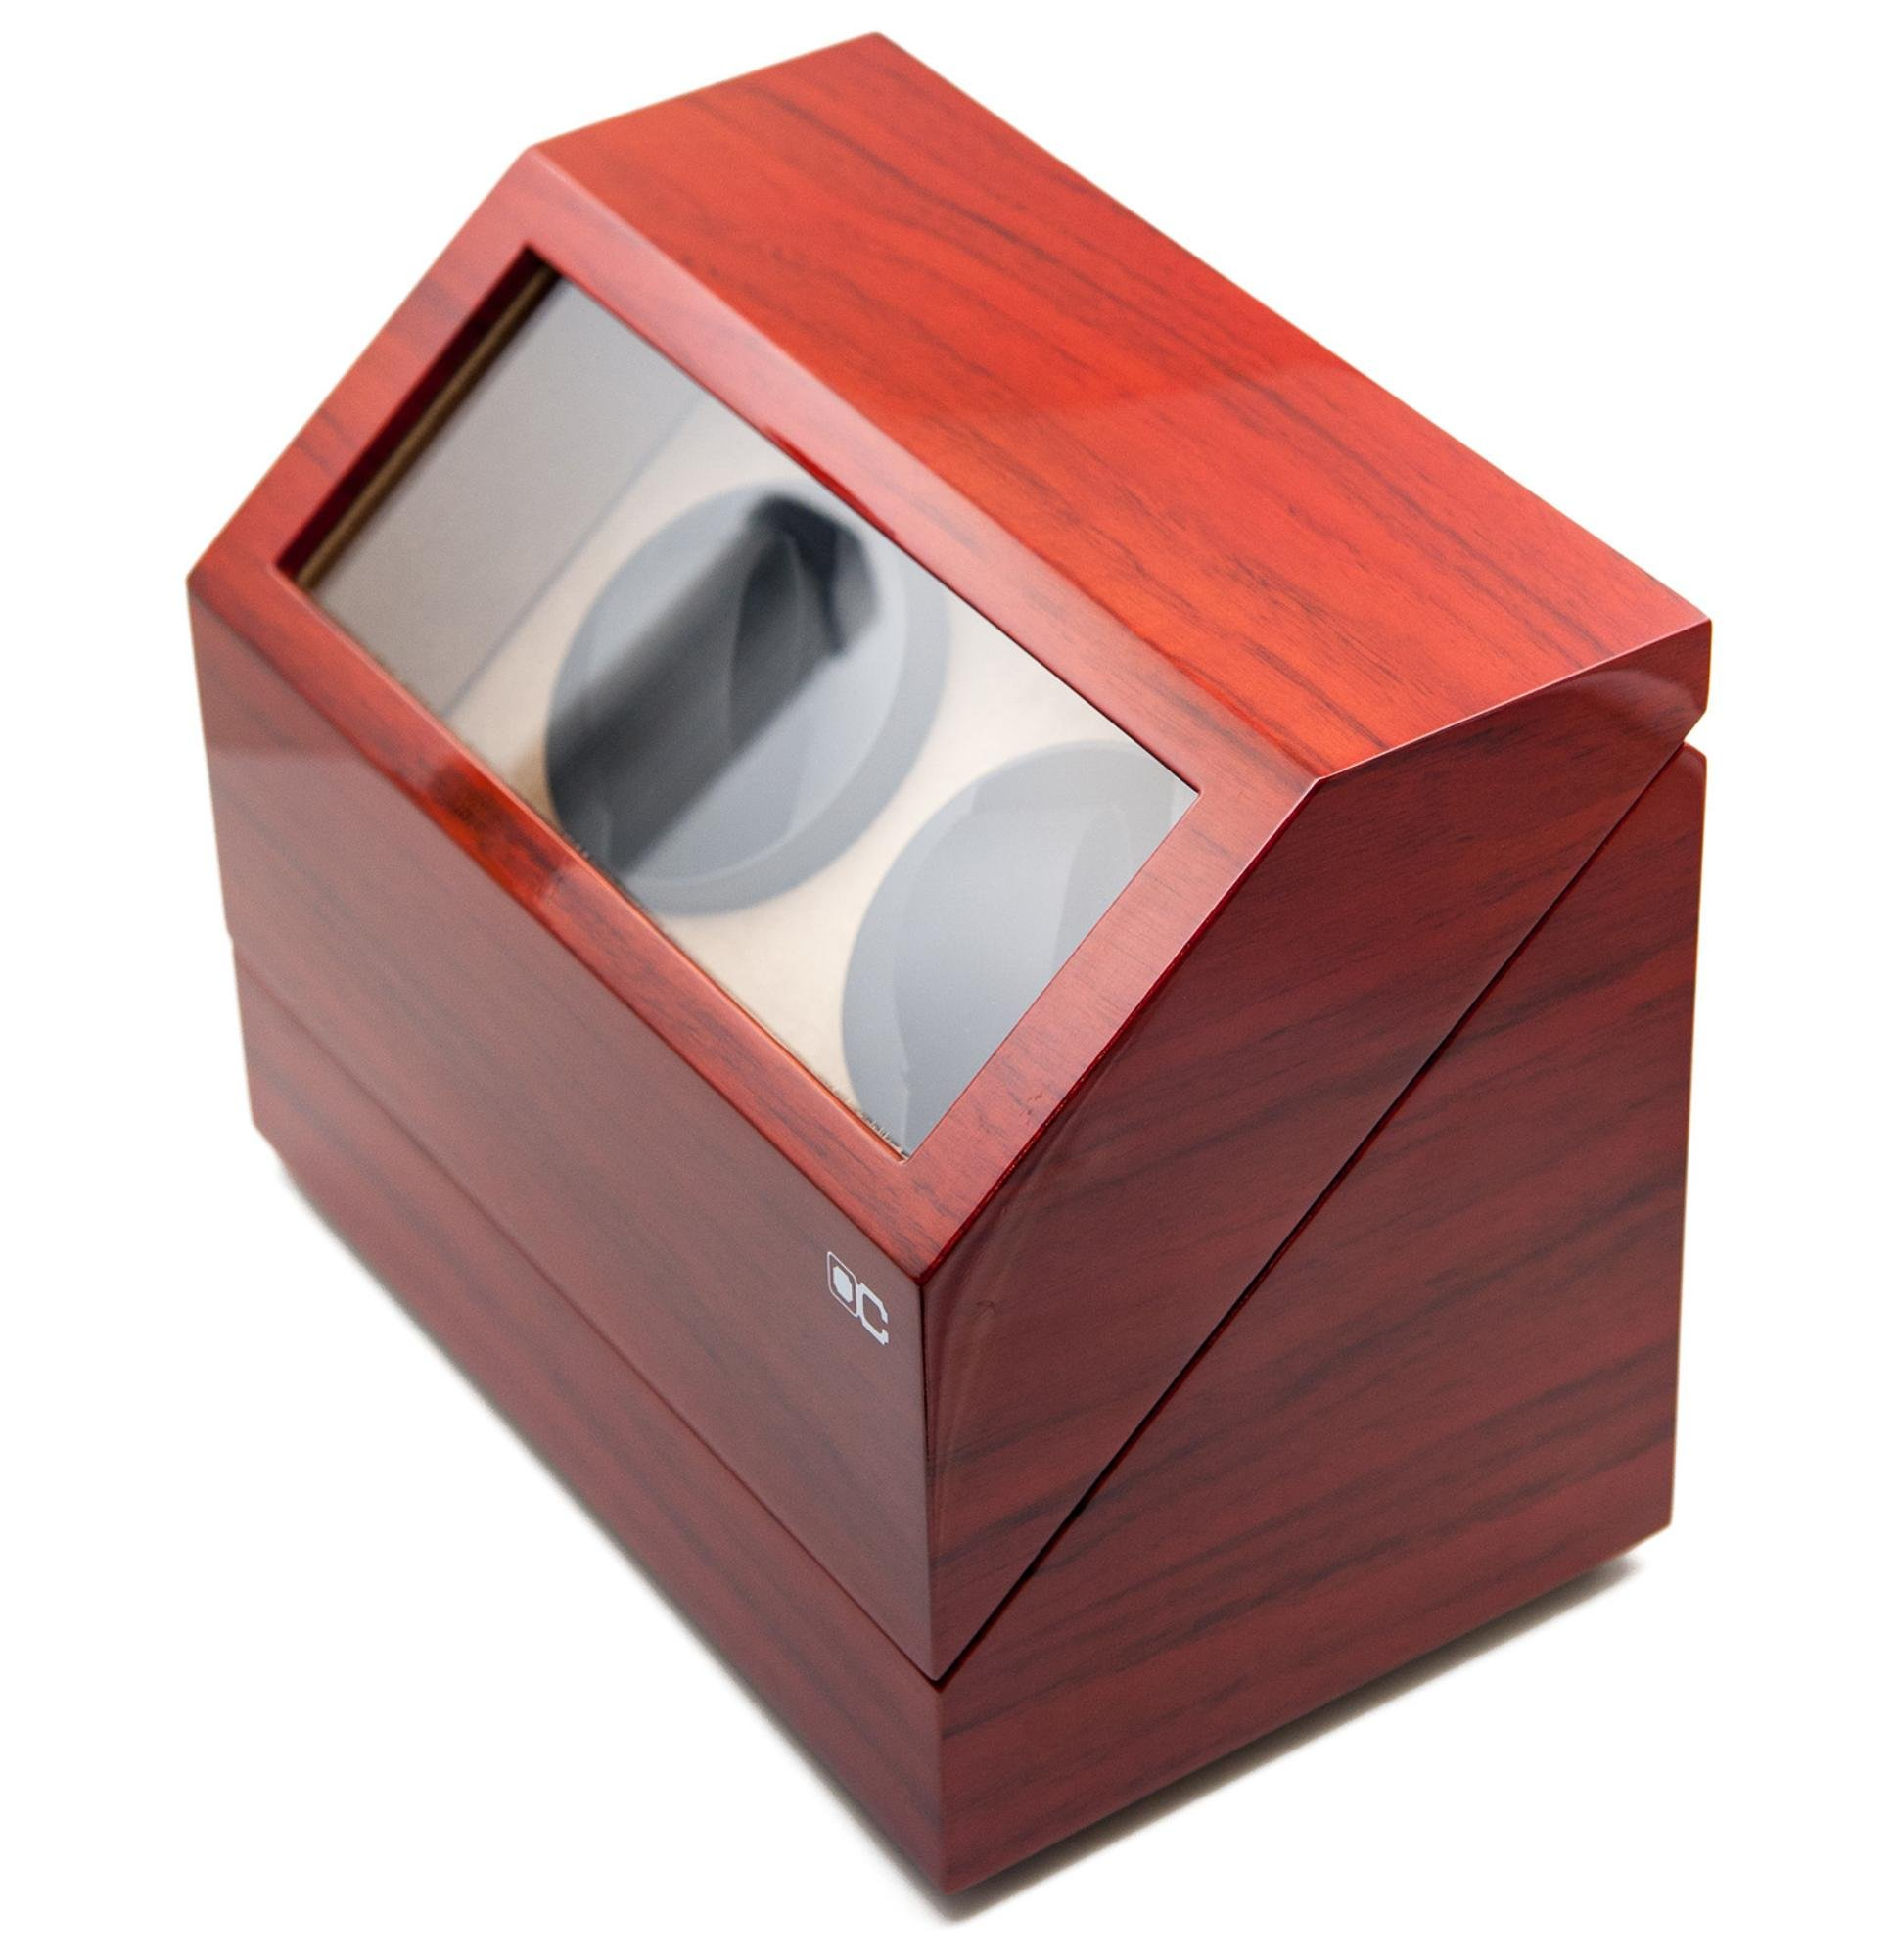 KAIHE-BOX Classic Watch Winders for 2 Watches for automatic Watch Winder Rotator Case Cover Storage(2 color,ww-02132) , Red by KAIHE-BOX (Image #2)